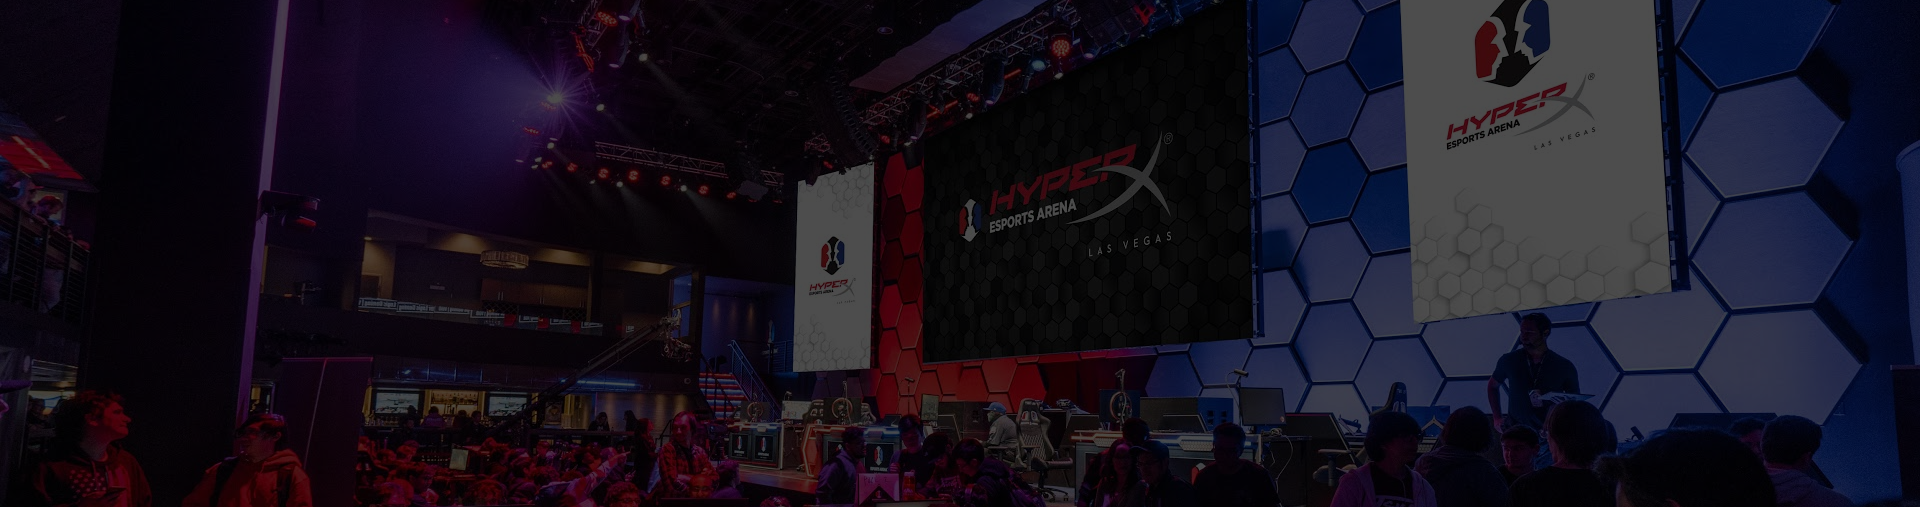 a true partnership is a two-way street - The best and most productive relationships are synergistic and goal-oriented, and a long-term relationship has the value add of deep-rooted industry and company knowledge and relationships. - hyperx esports arena experiences